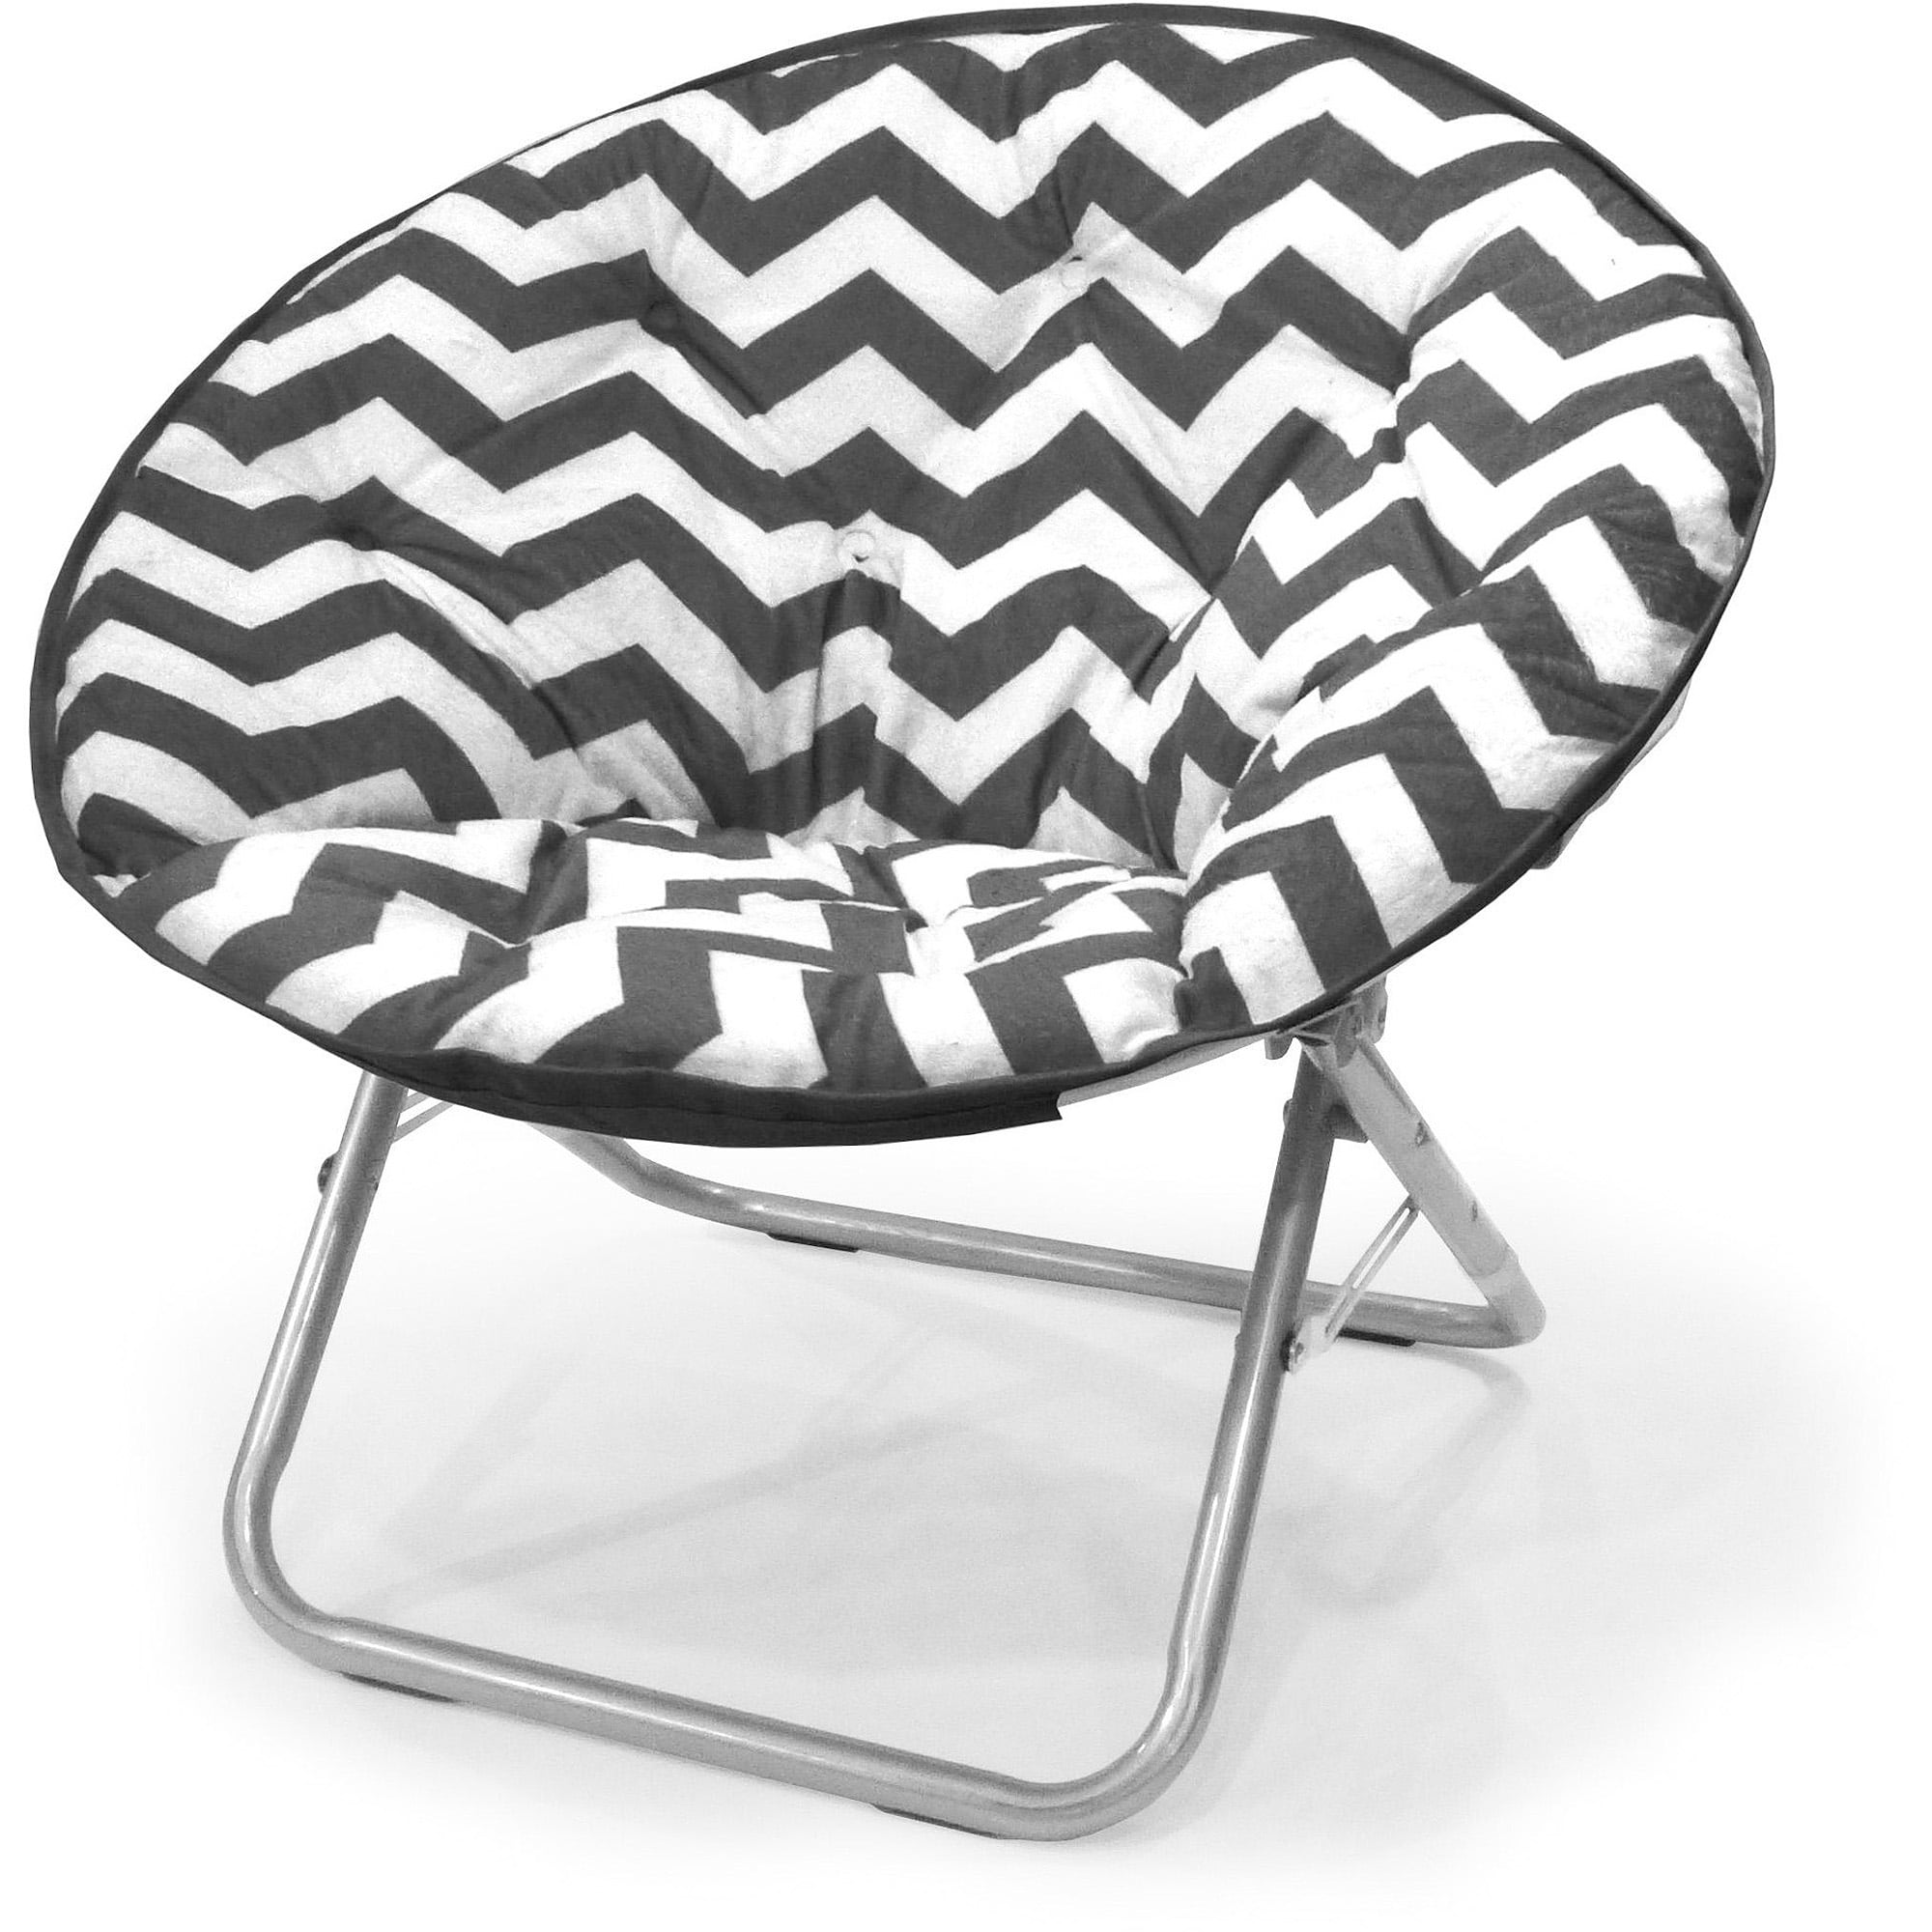 Mainstays Plush Chevron Saucer Chair, Multiple Colors - Walmart.com